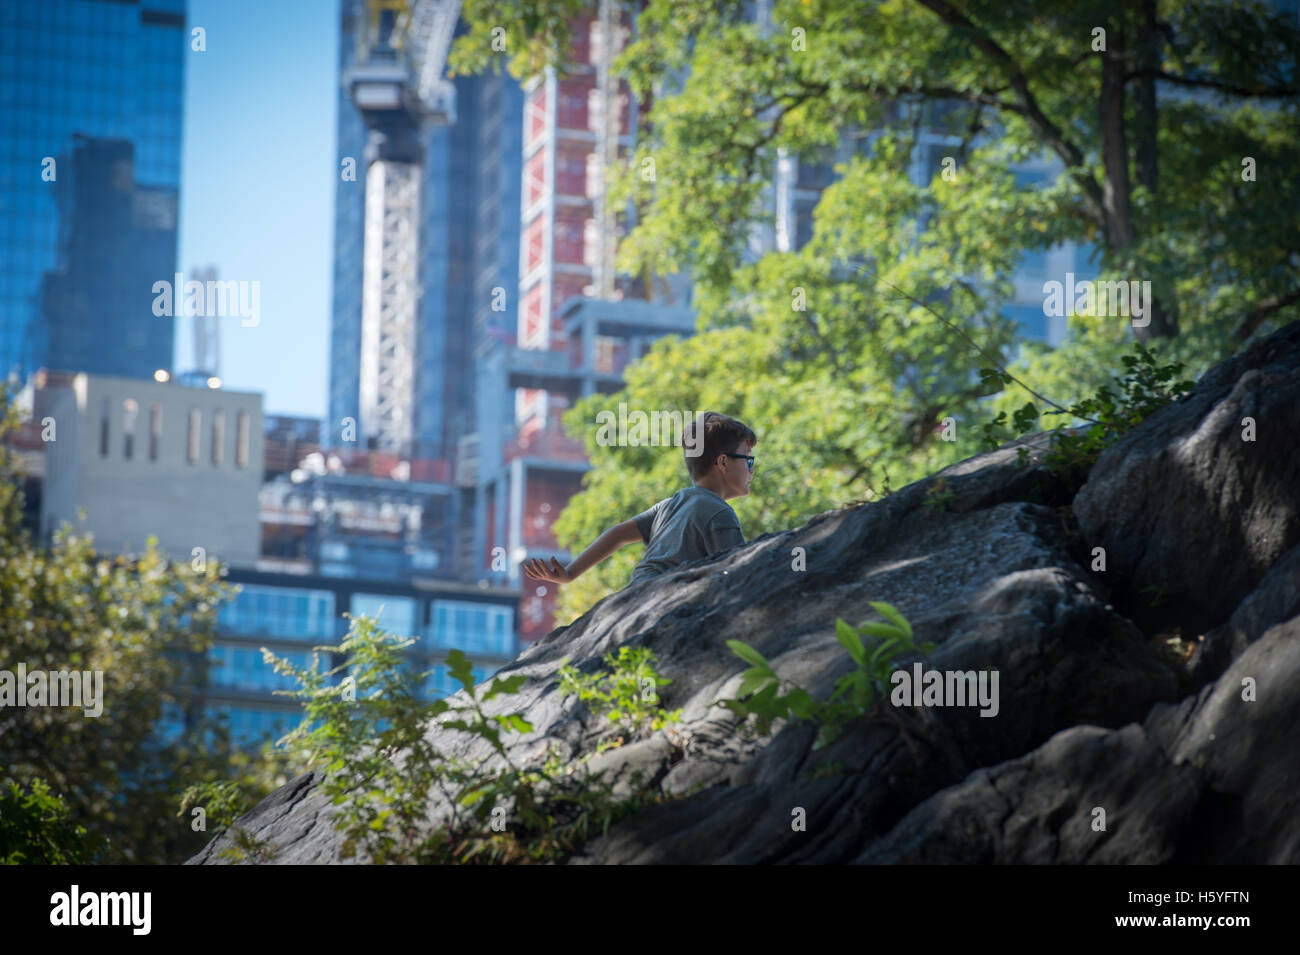 New york ny usa 15th oct 2016 holden crutchfield 9 of cobble new york ny usa 15th oct 2016 holden crutchfield 9 of cobble hill center climbs in a class by the movement creative parkour at central parks publicscrutiny Gallery